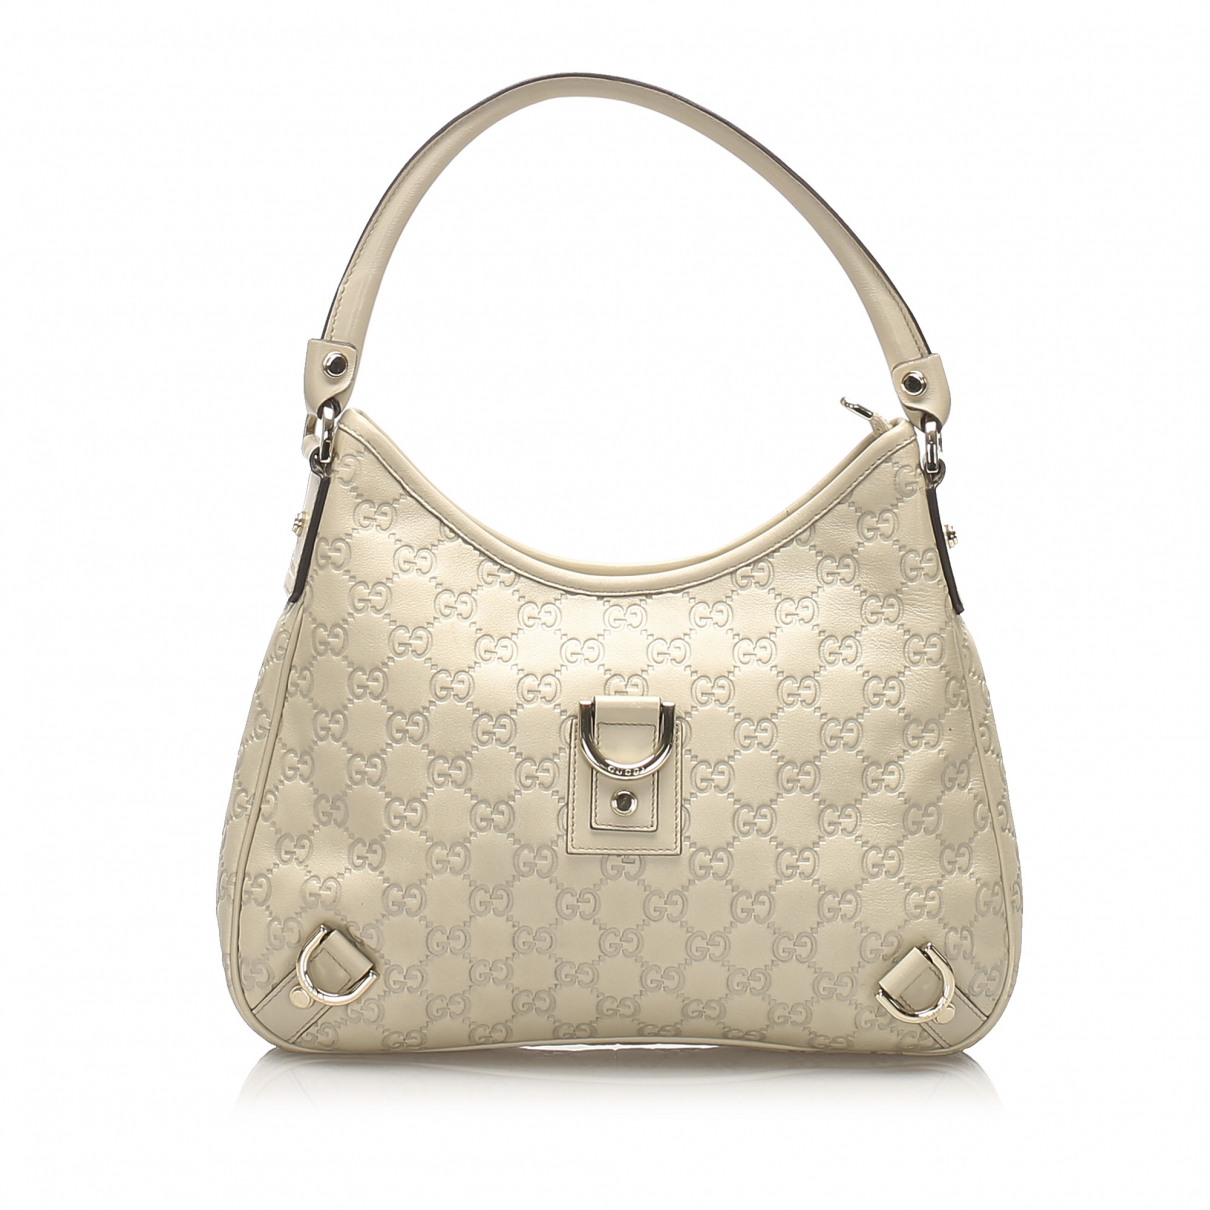 Gucci N White Leather handbag for Women N